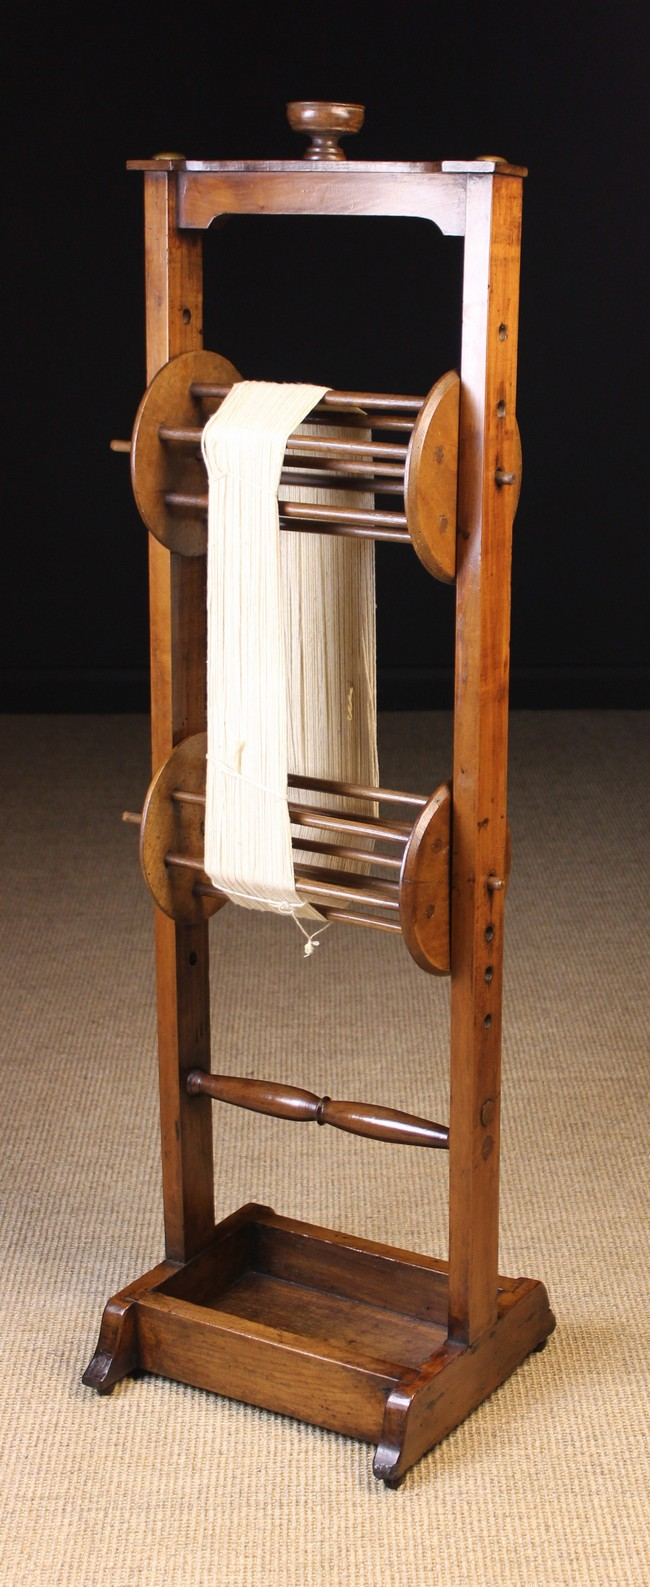 Lot 84 - A 19th Century Wool Winder.